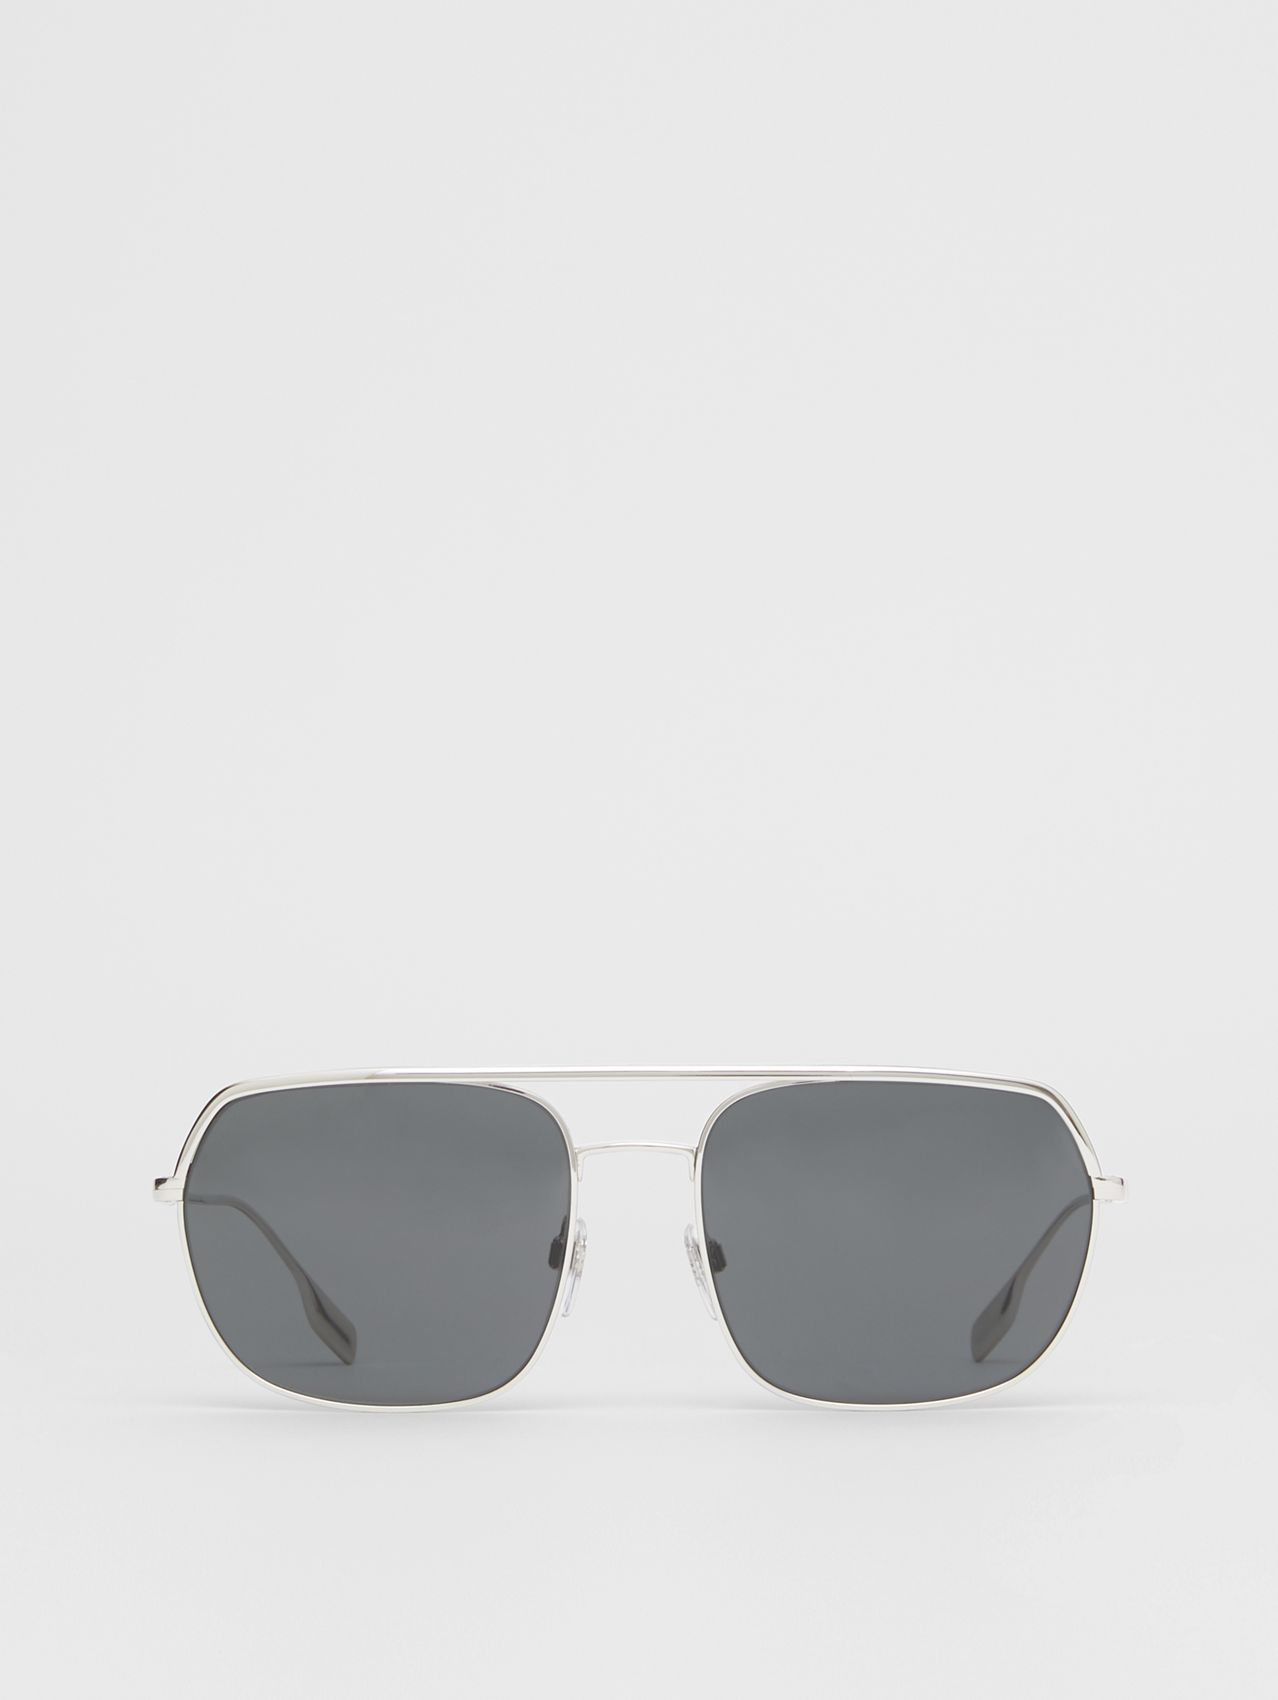 Square Pilot Sunglasses in Silver